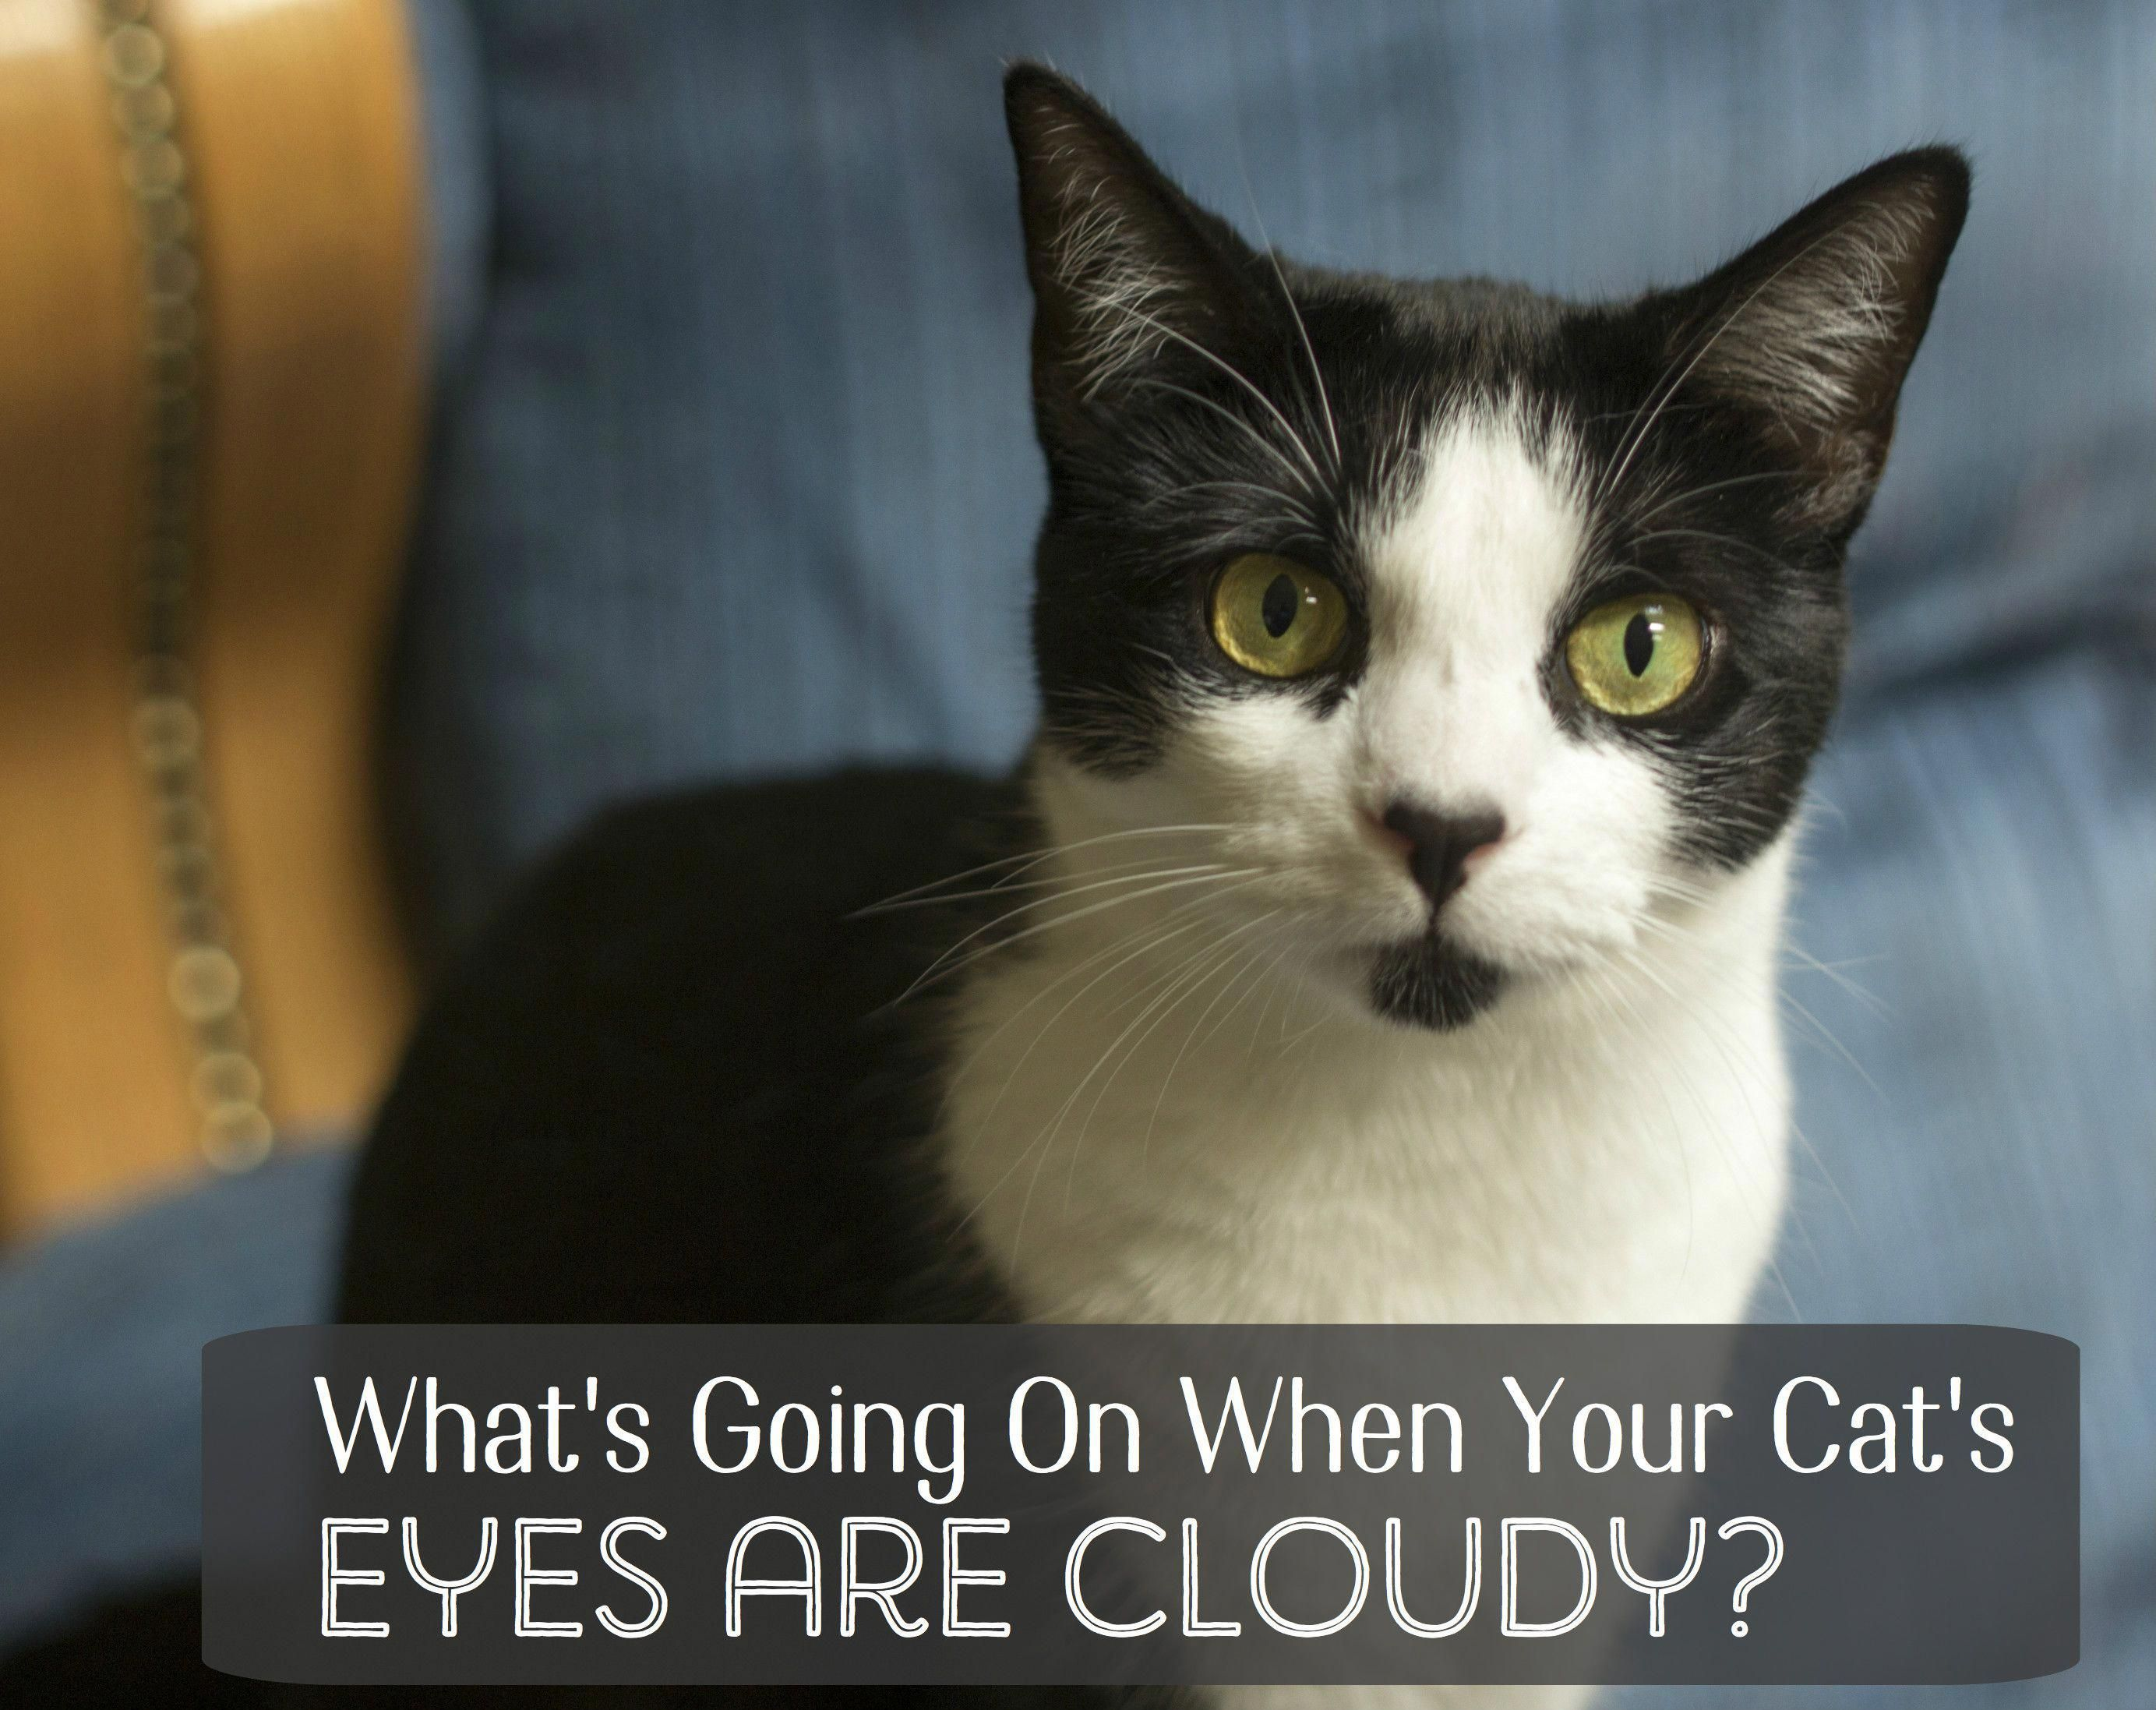 What Causes Cloudy Eyes in Cats? catfacts Cat facts